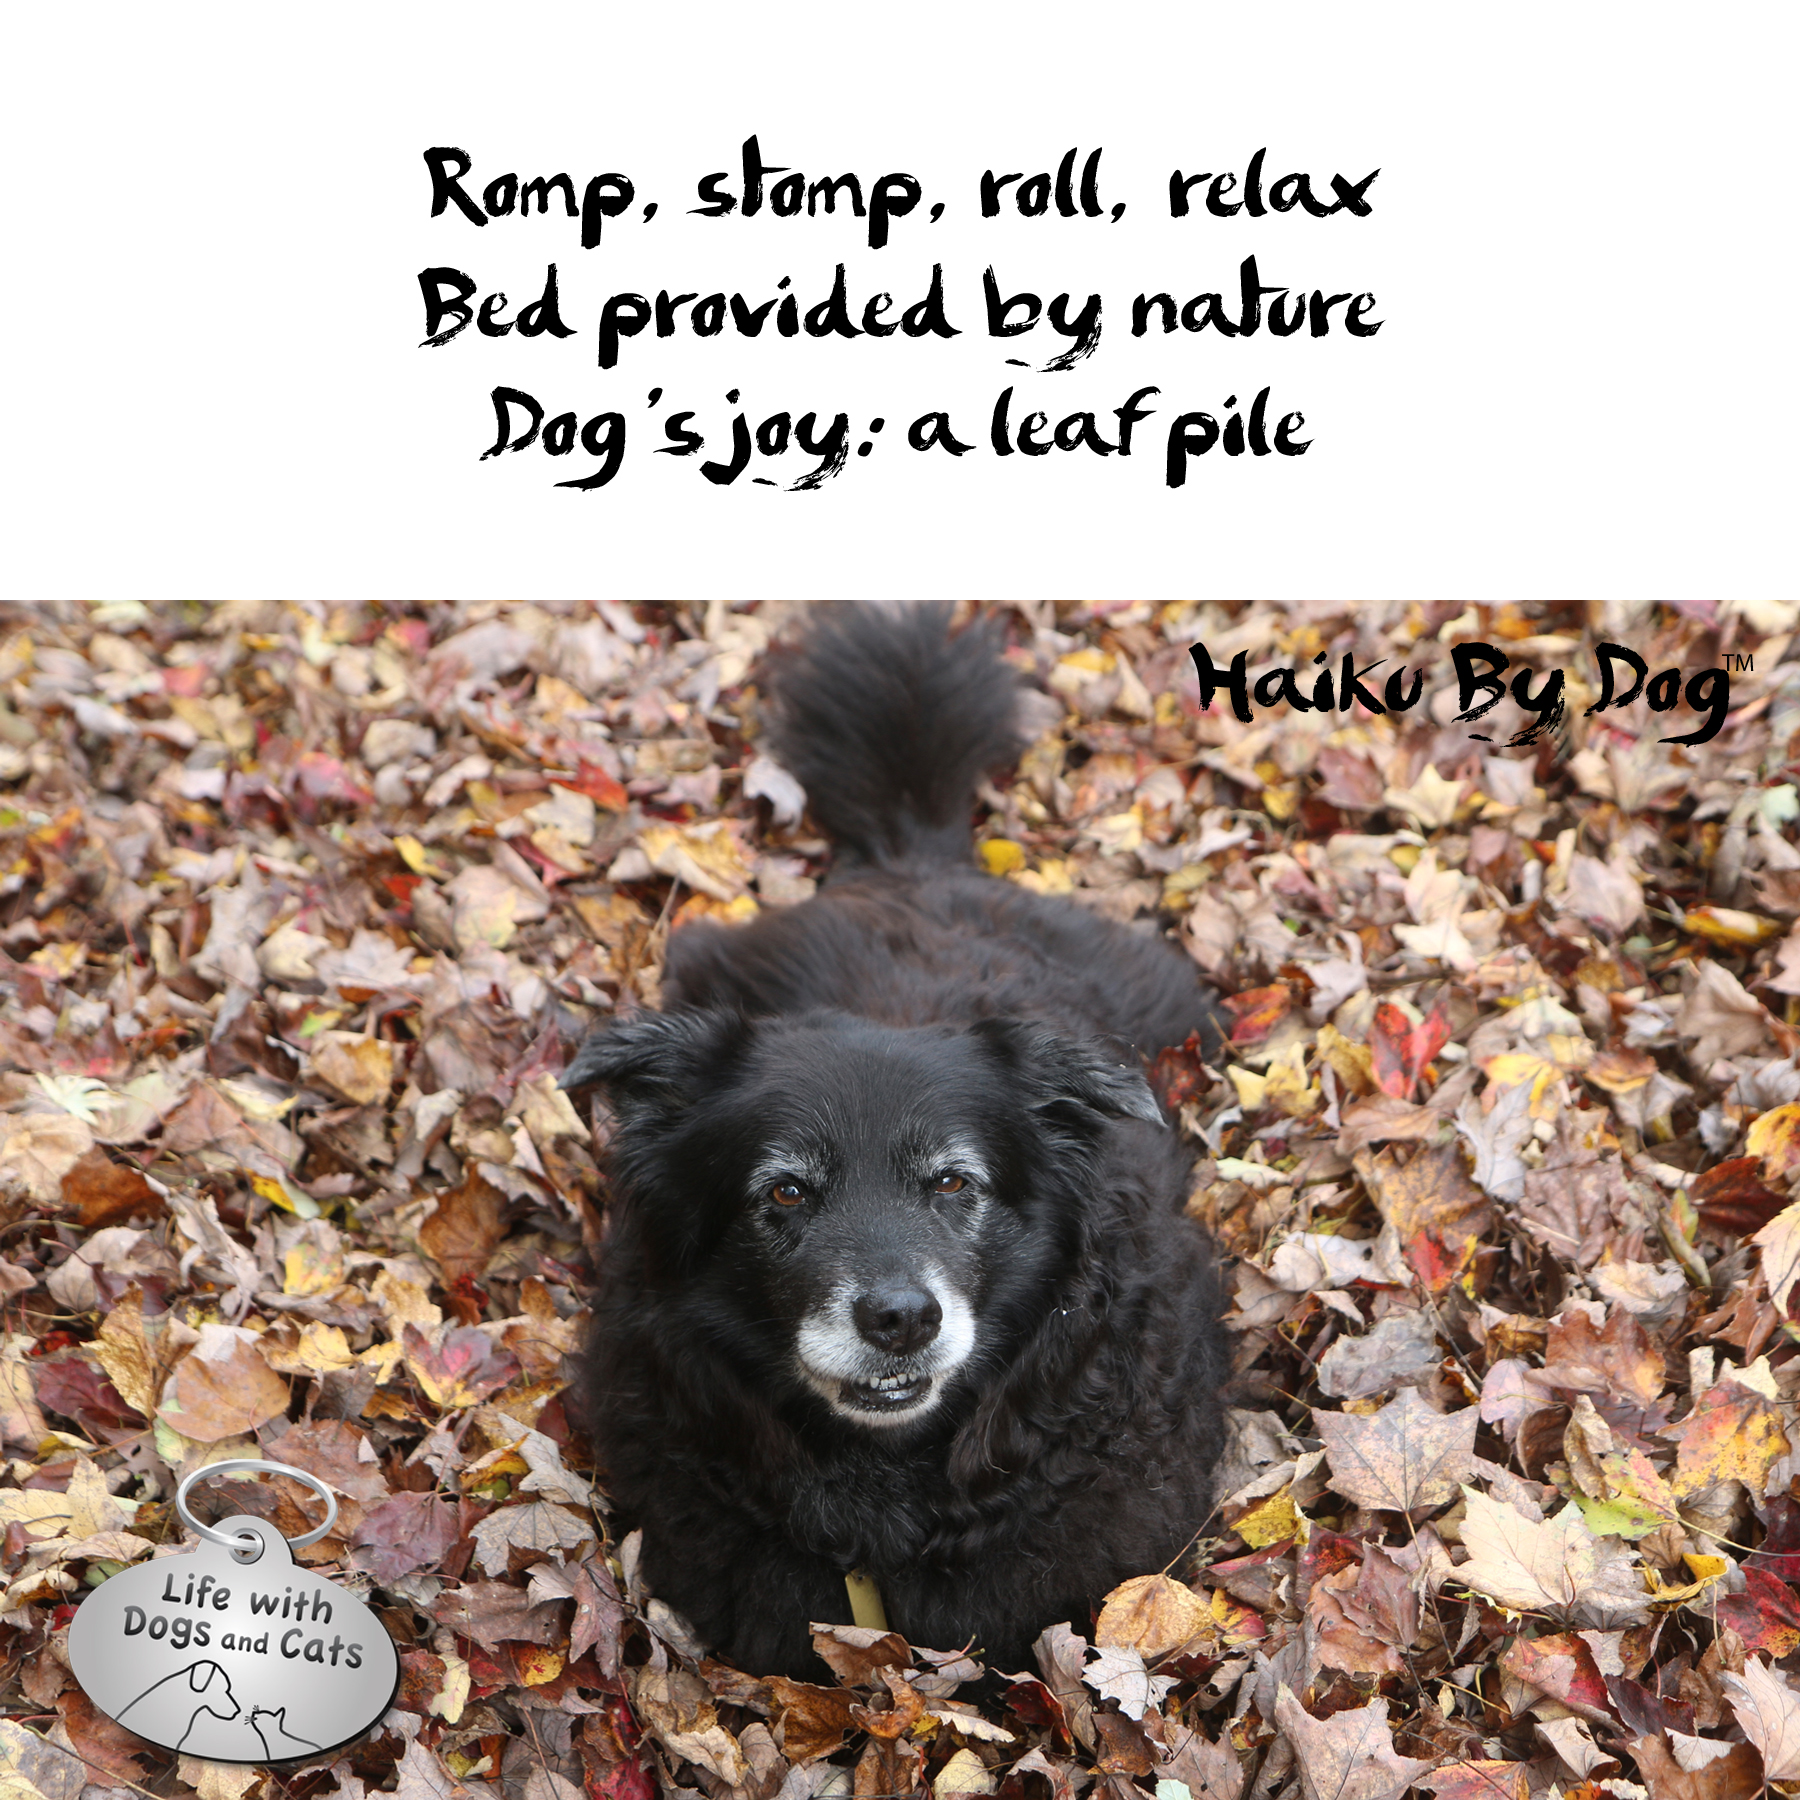 romp, stomp, roll, relax / bed provided by nature / dog's joy: a leaf pile #HaikuByDog